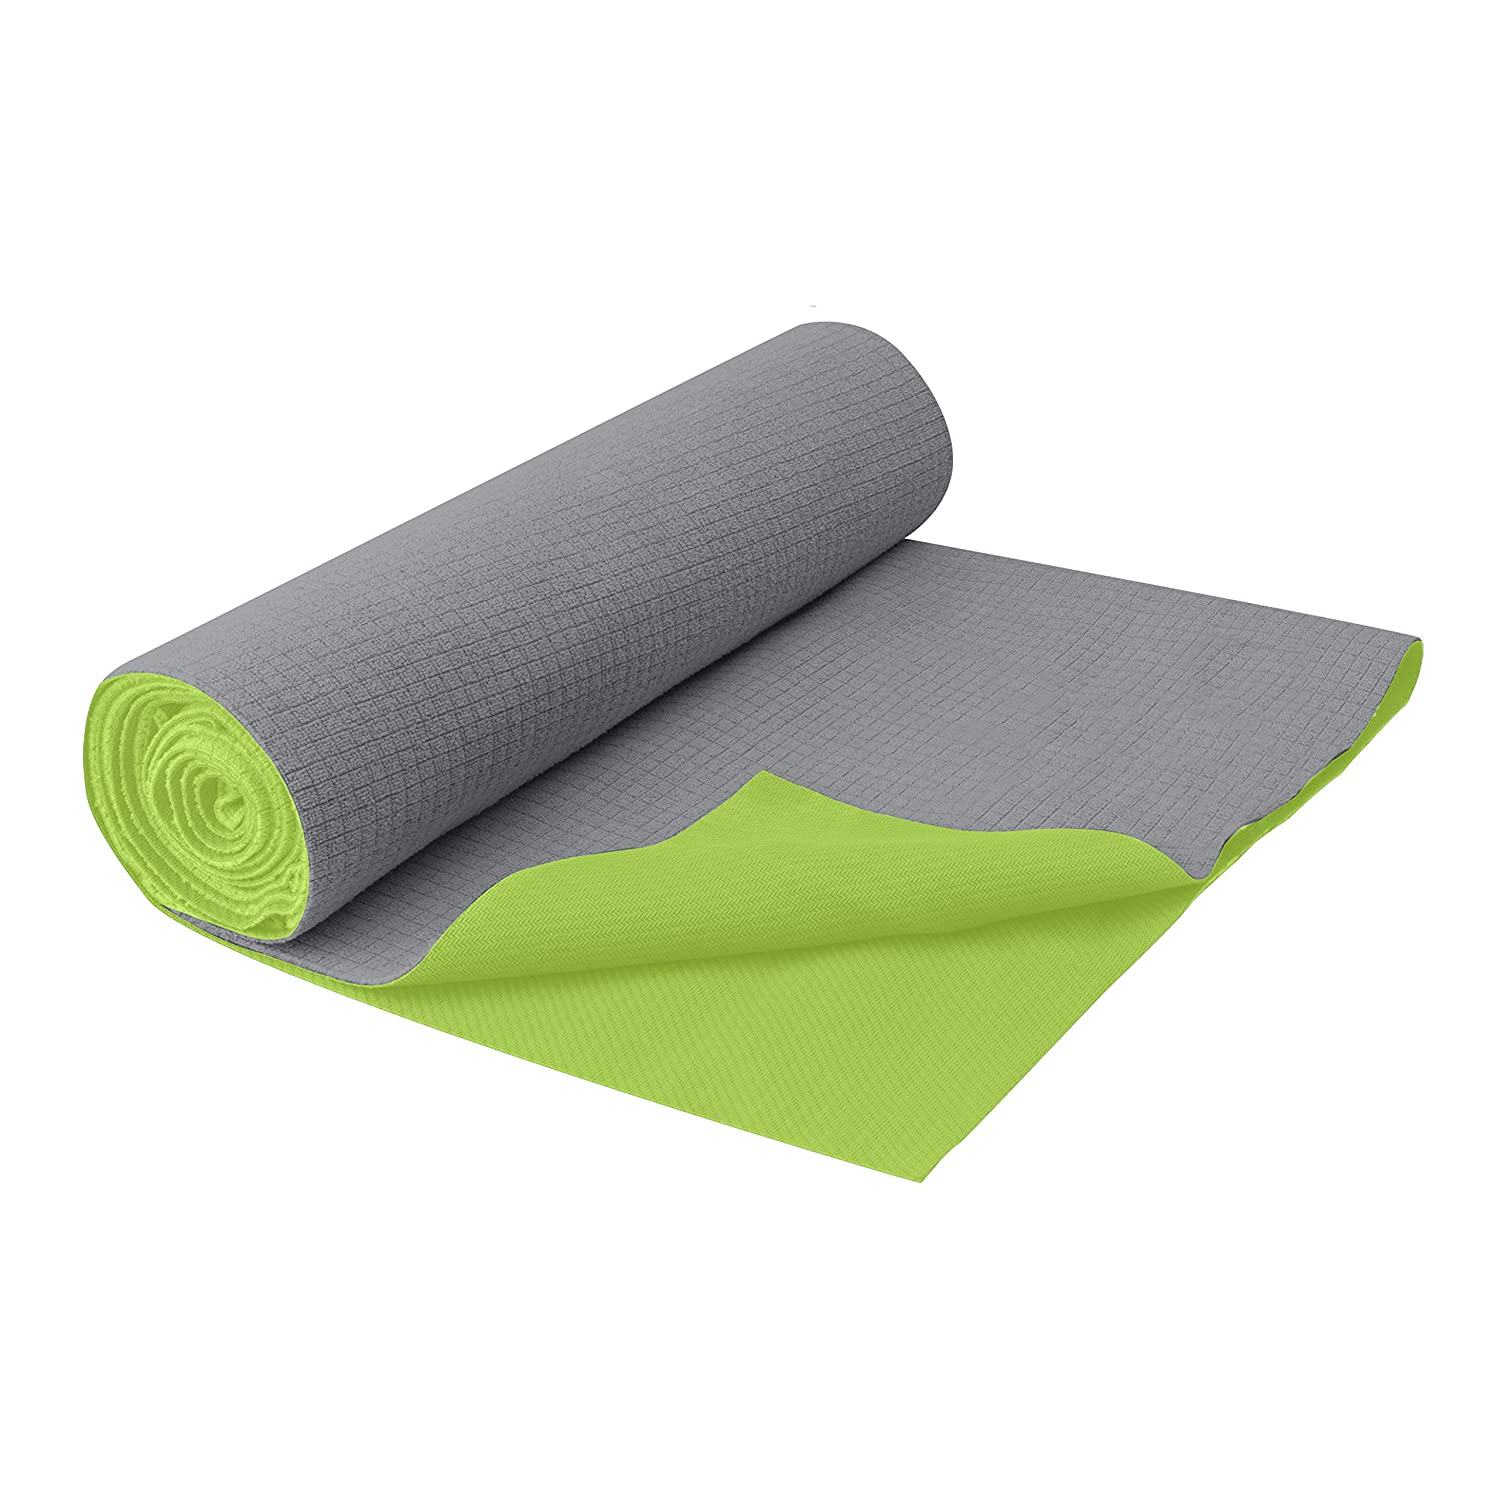 pumice co yoga mat the travel yeti products